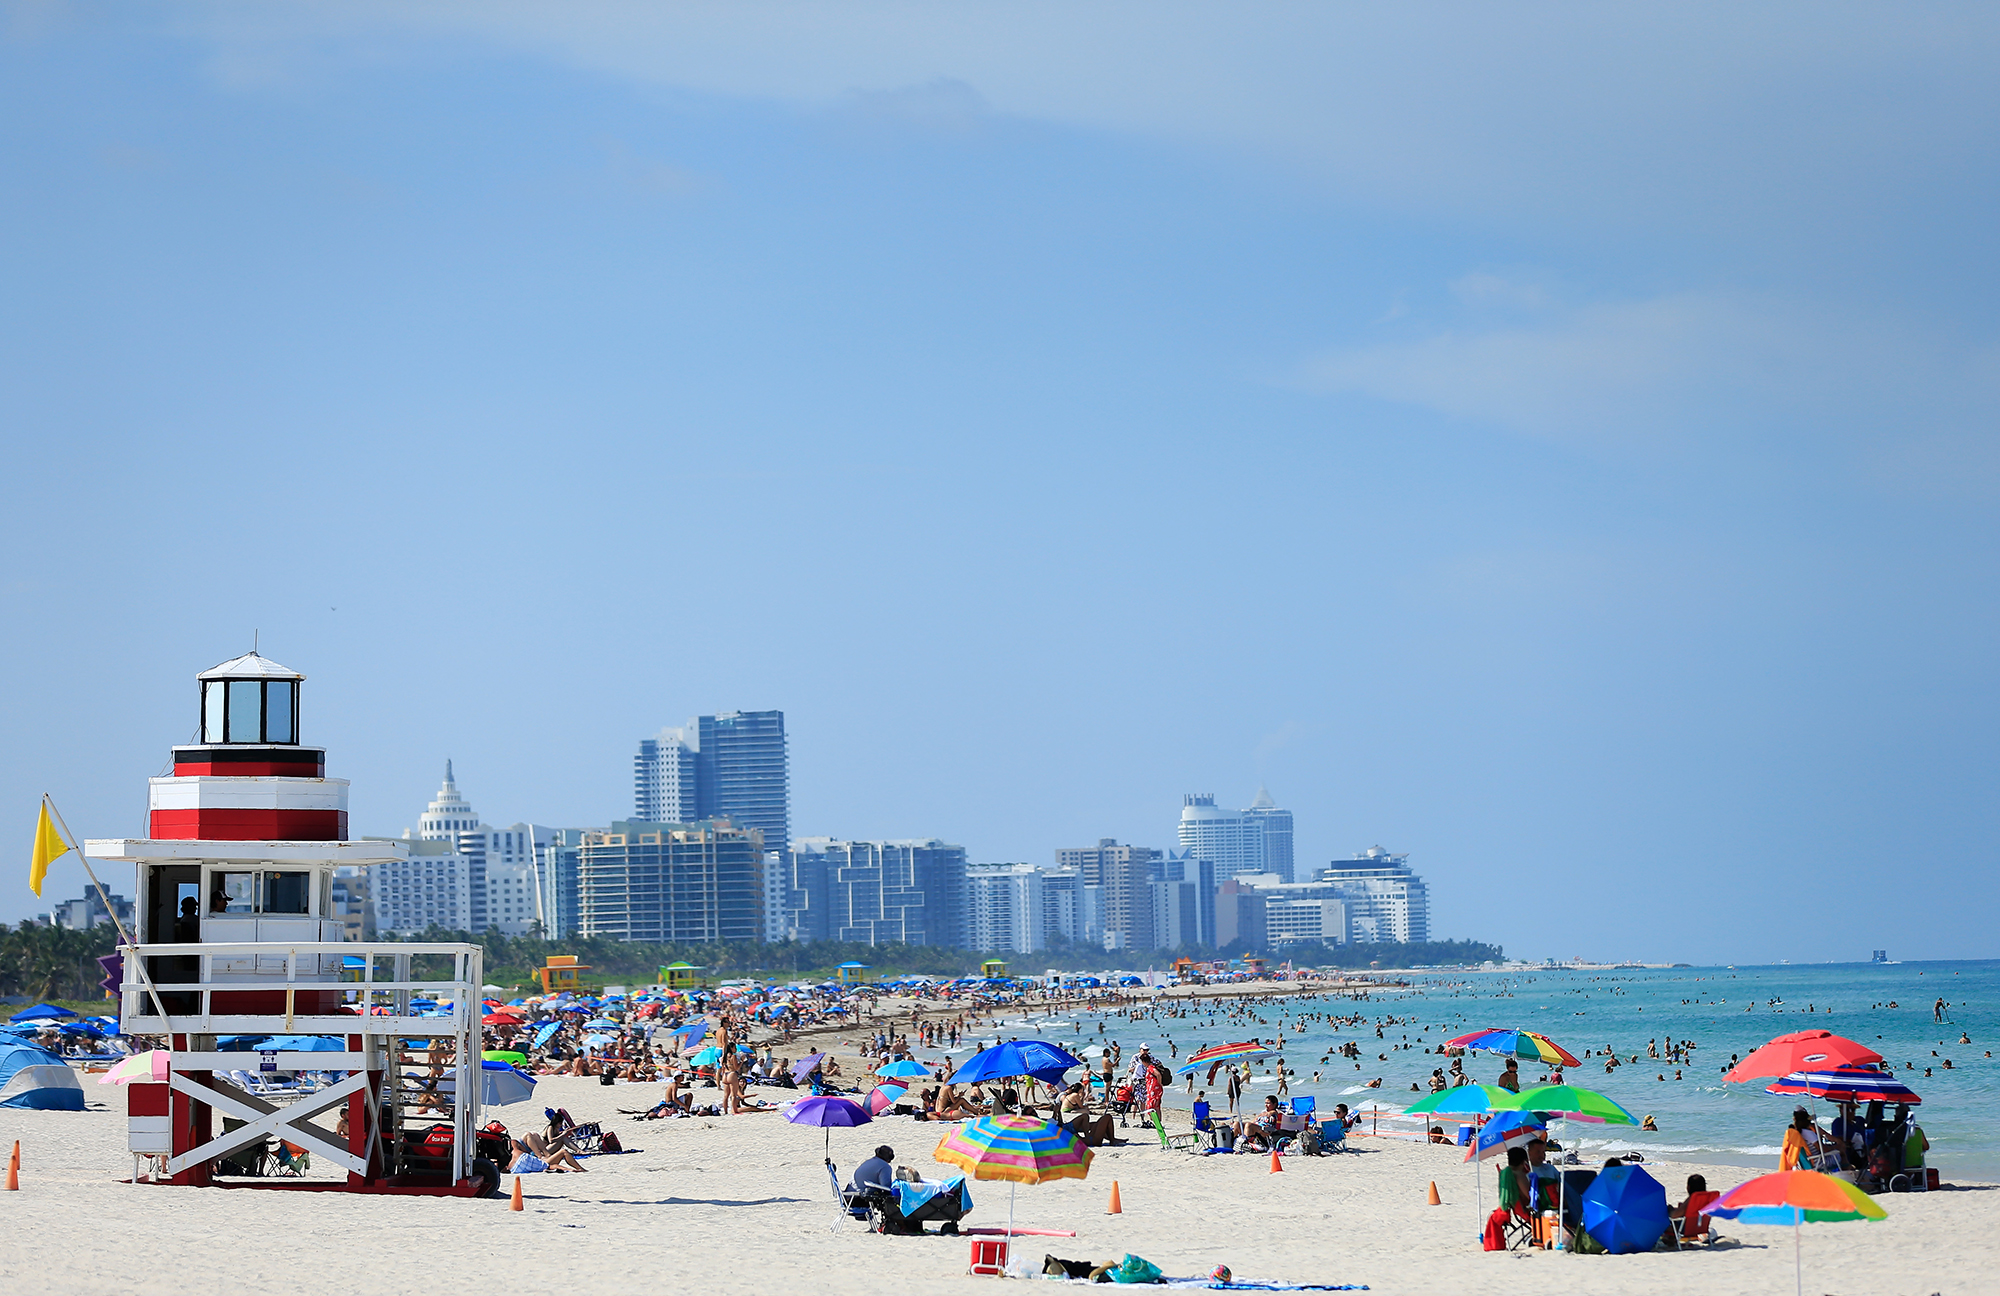 Beachgoers on South Beach on June 10, 2020 in Miami Beach, Florida as the area eased restrictions put in place to contain COVID-19.